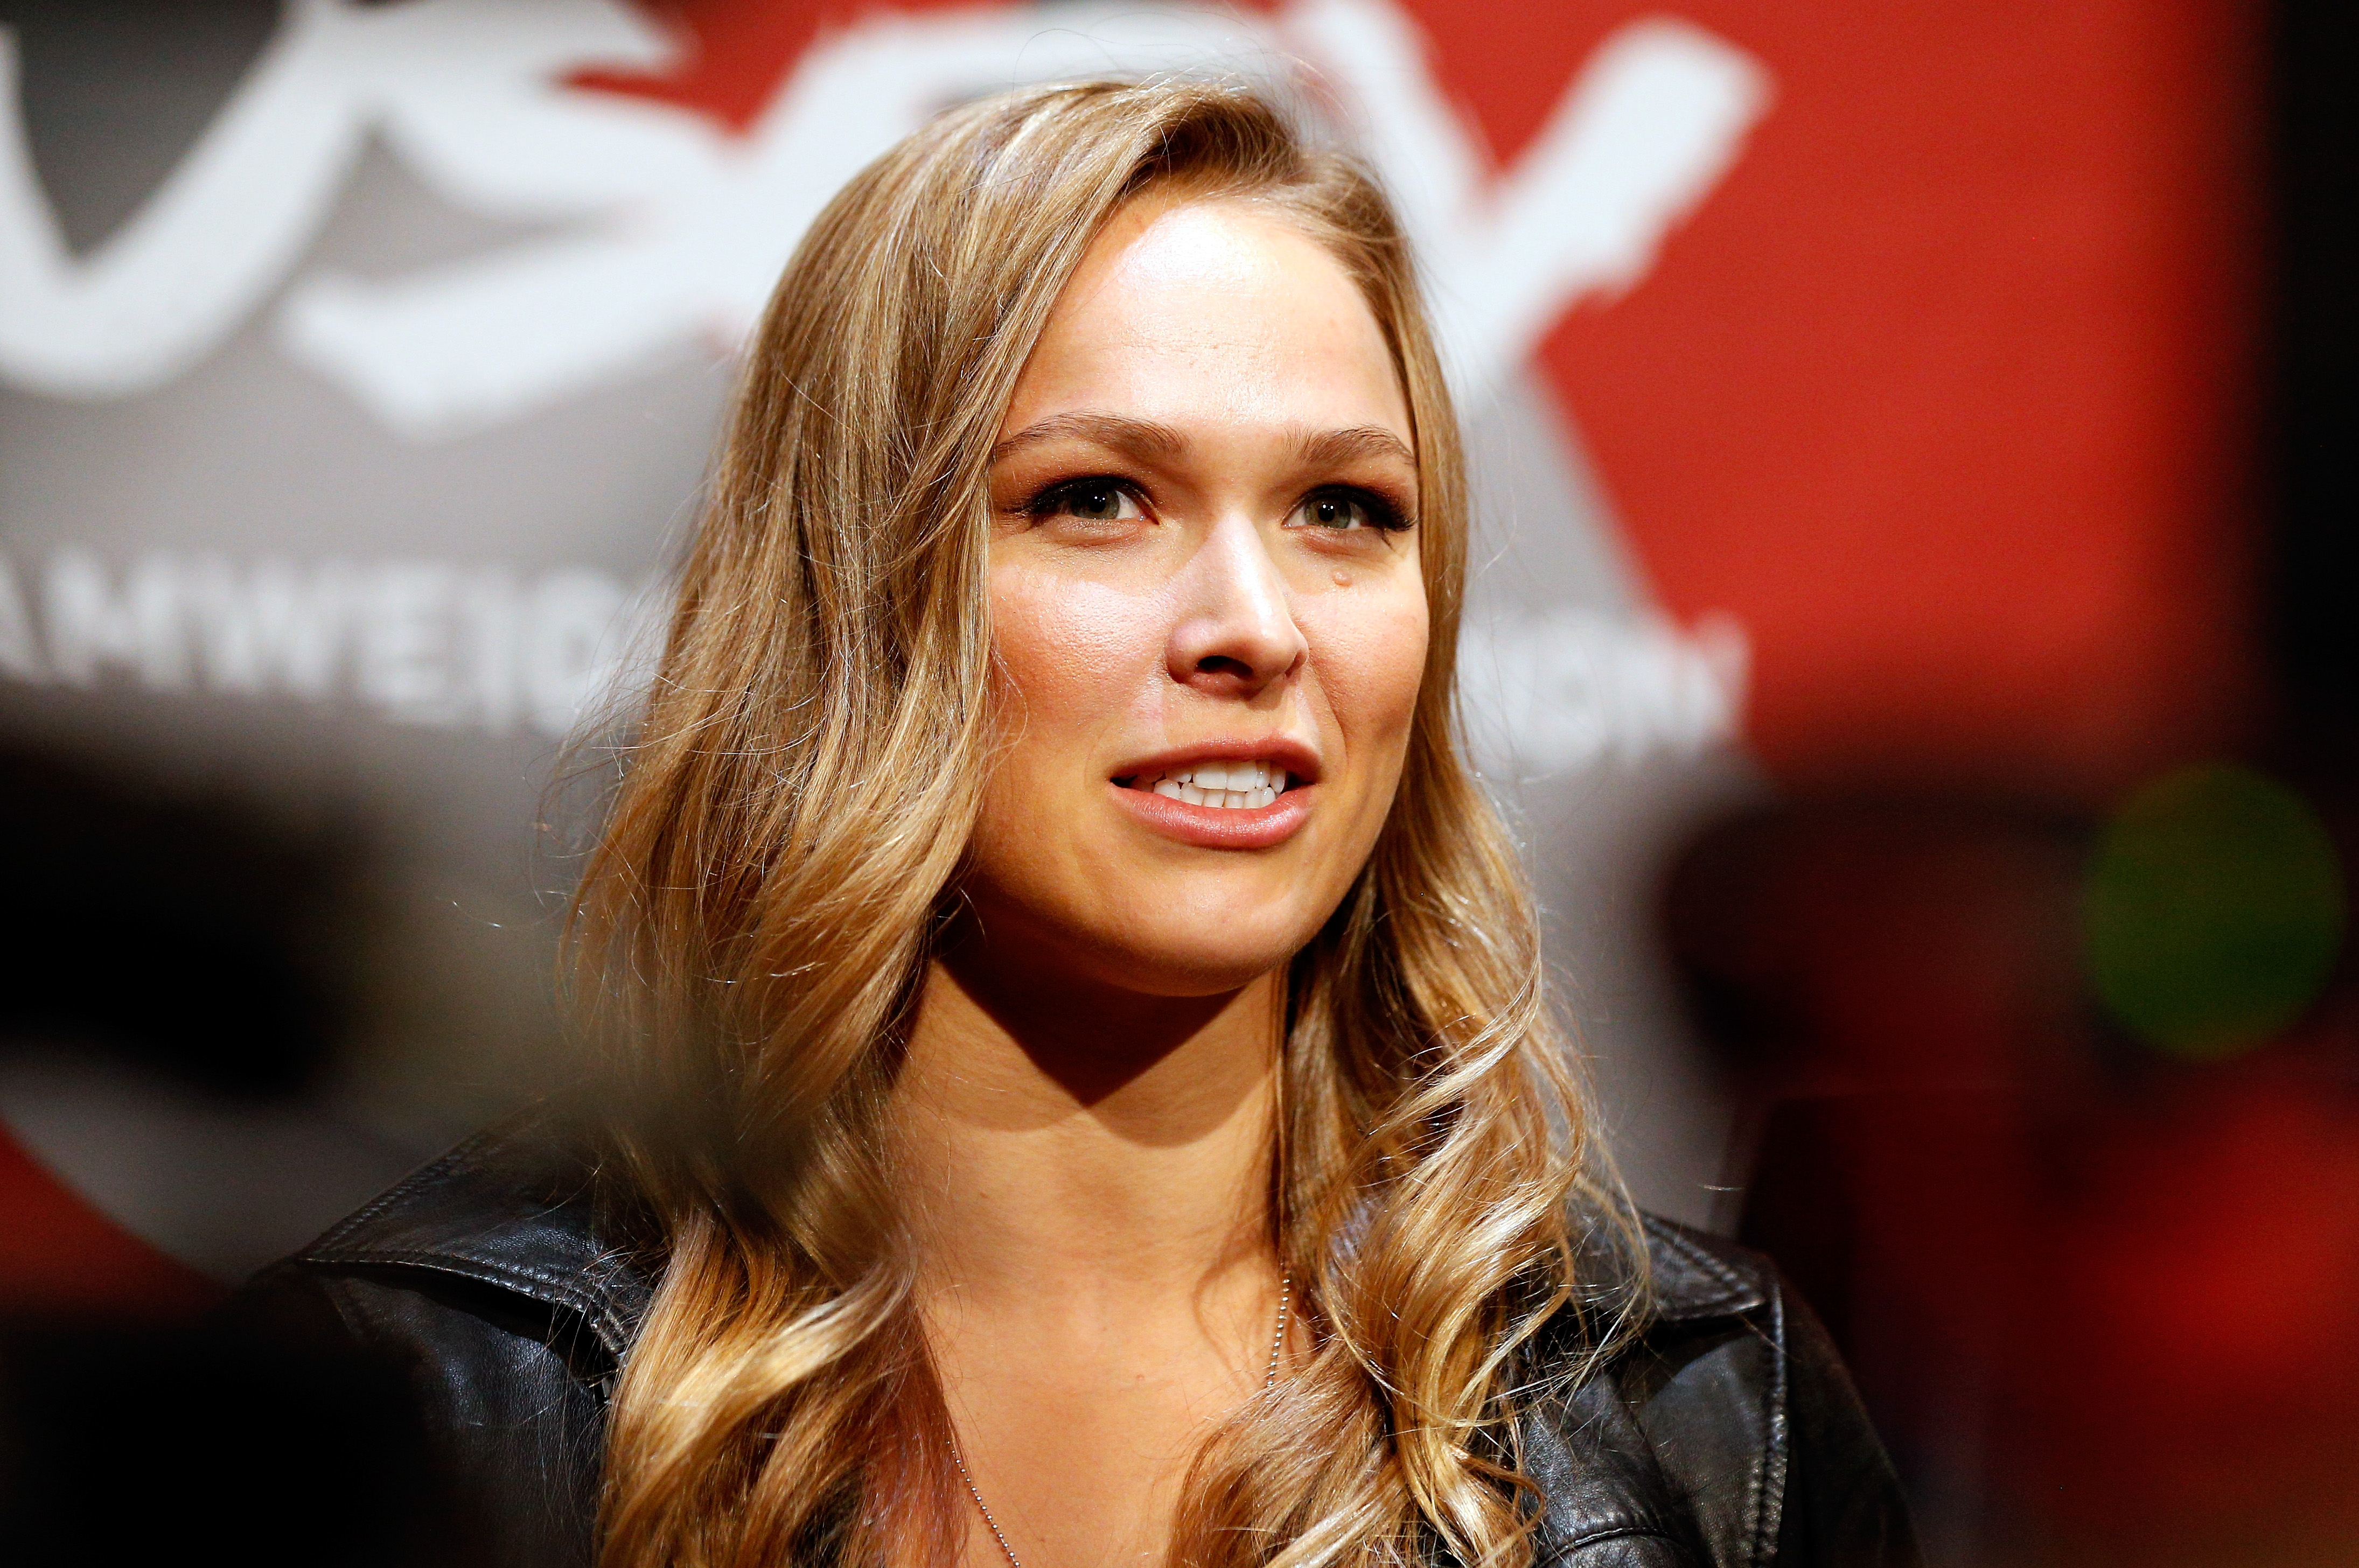 Ronda rousey computer wallpapers desktop backgrounds 4380x2912 id